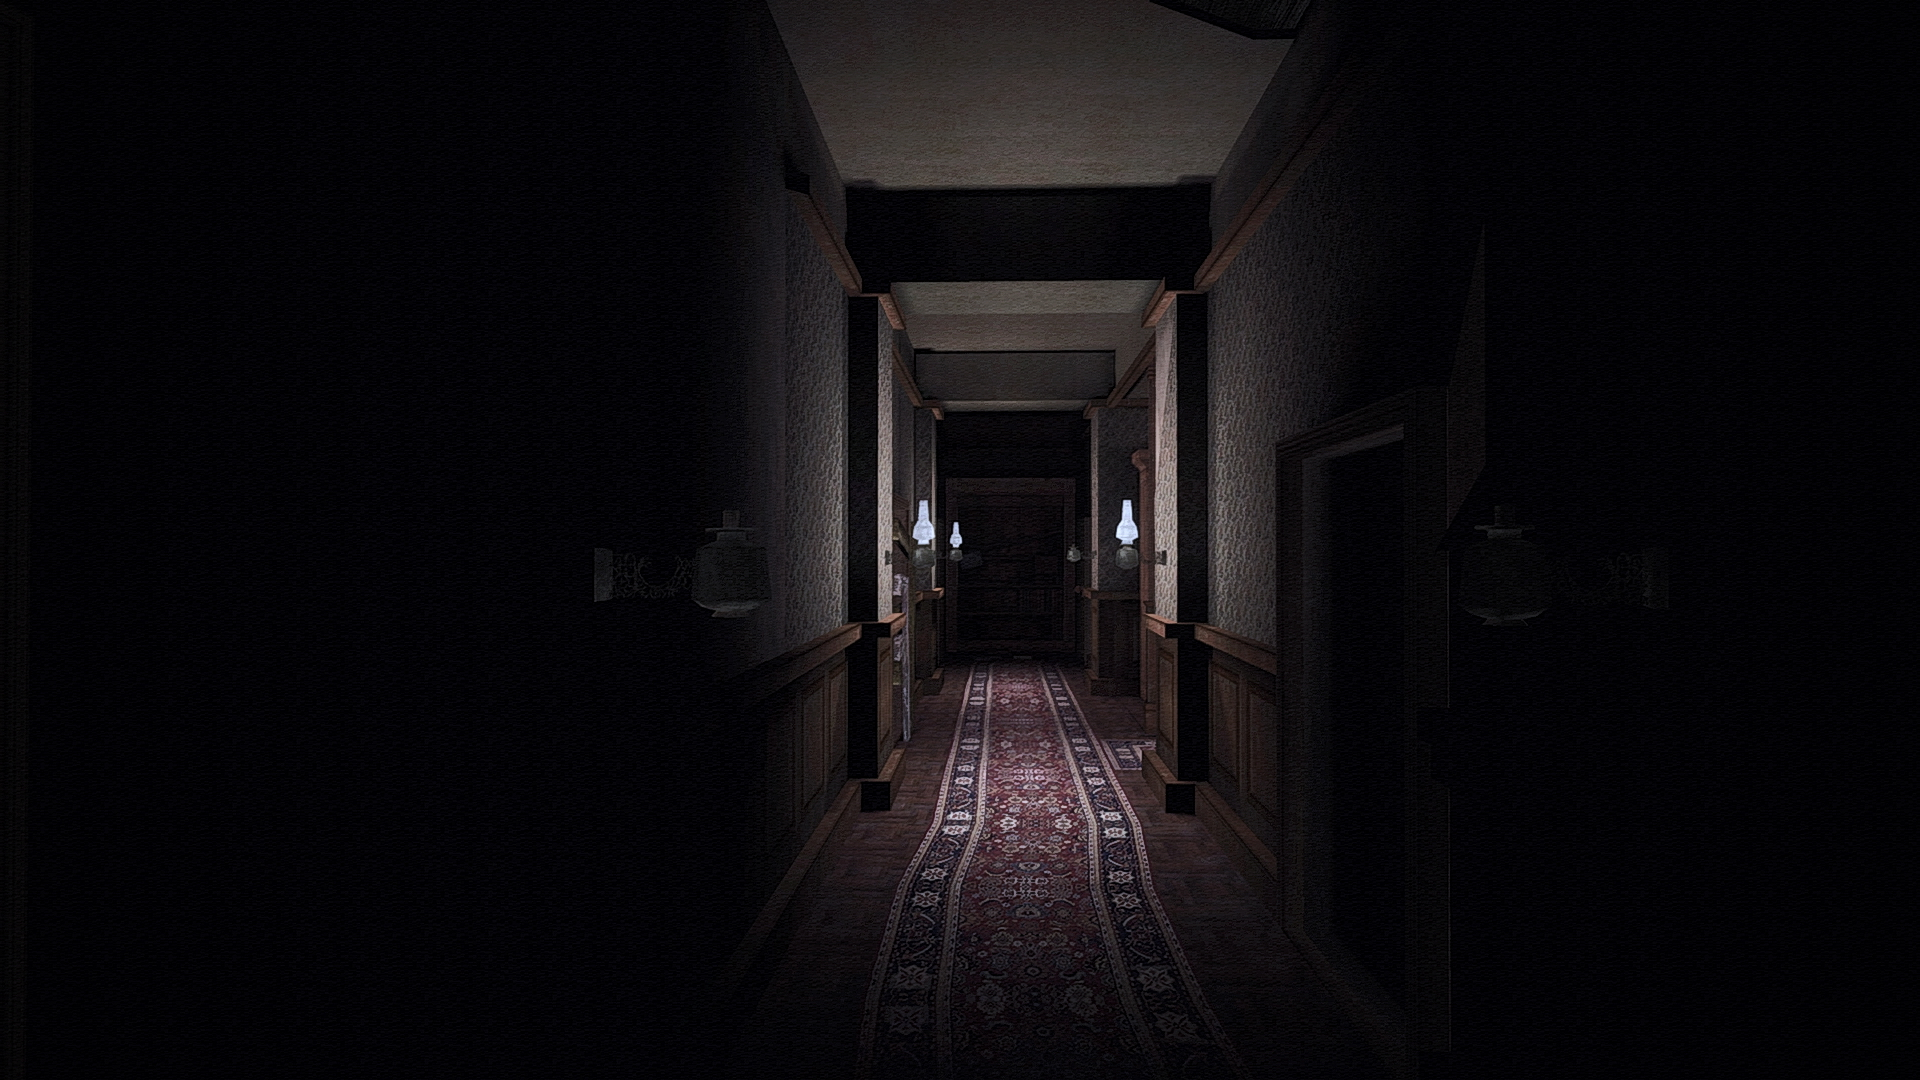 15-year-old Cthulhu game Dark Corners of the Earth gets full mod support